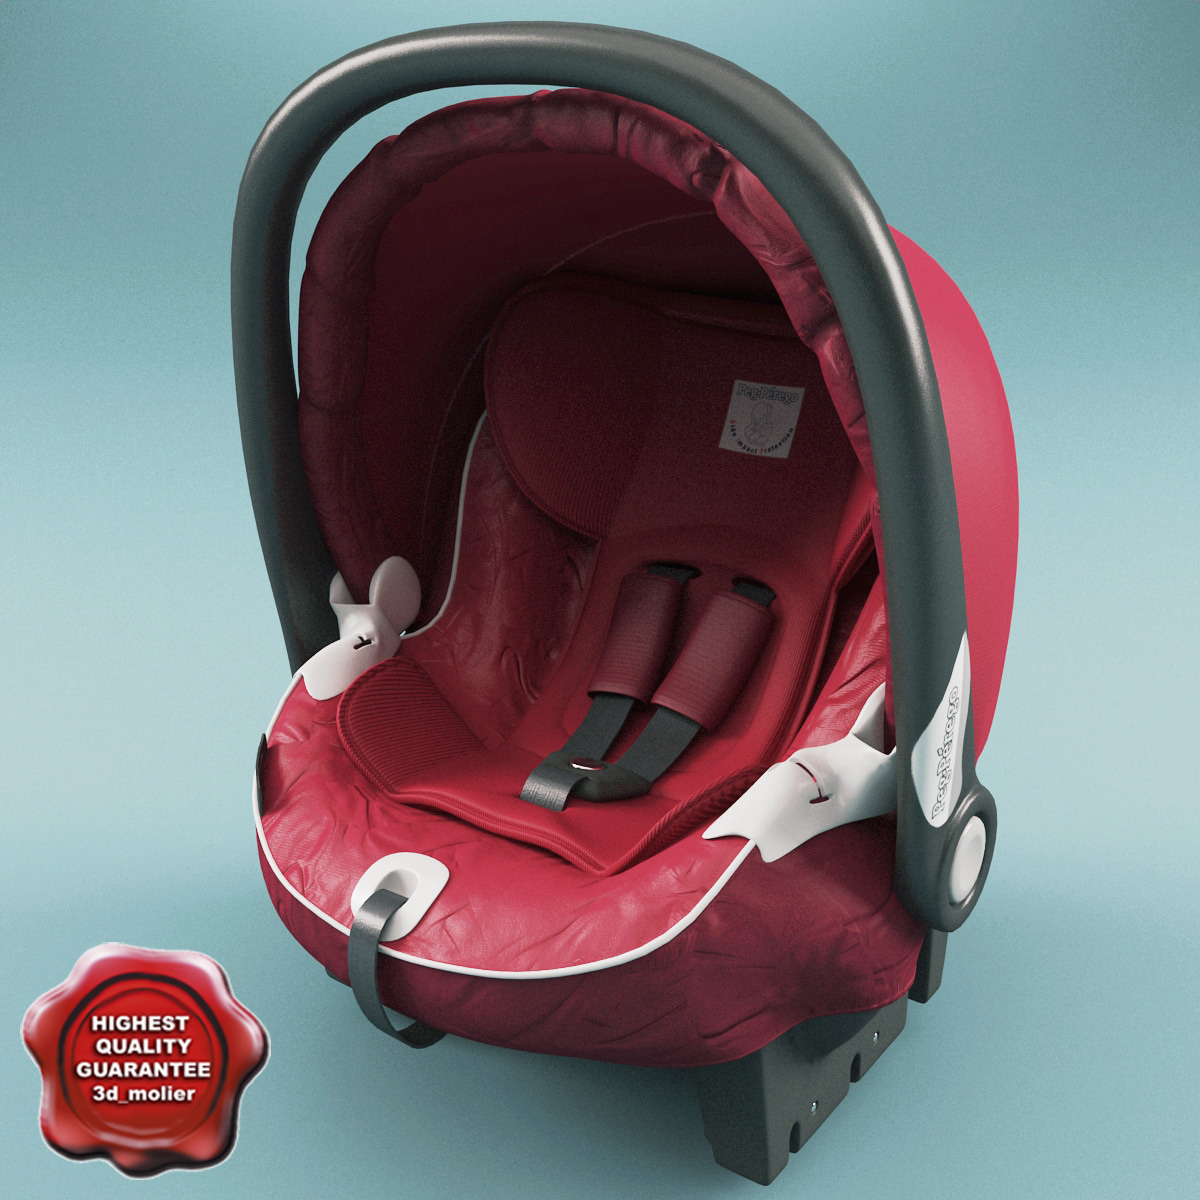 Infant_Car_Seat_Peg_Perego_00.jpg